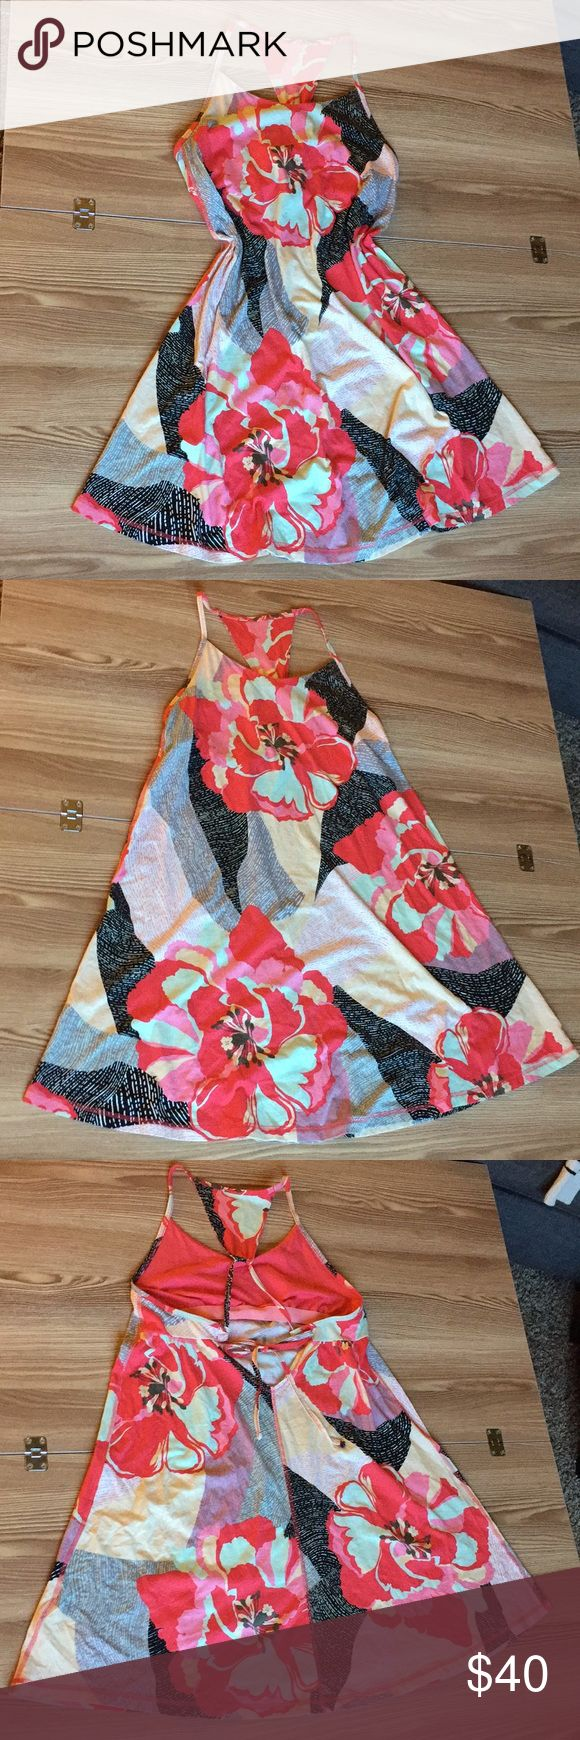 Patagonia Summer Dress, Medium EUC and beautiful Patagonia dress. Built in bra with adjustable straps allows this to cover a range of waist and bra sizes. Please see photos for measurements and condition reference. Patagonia Dresses